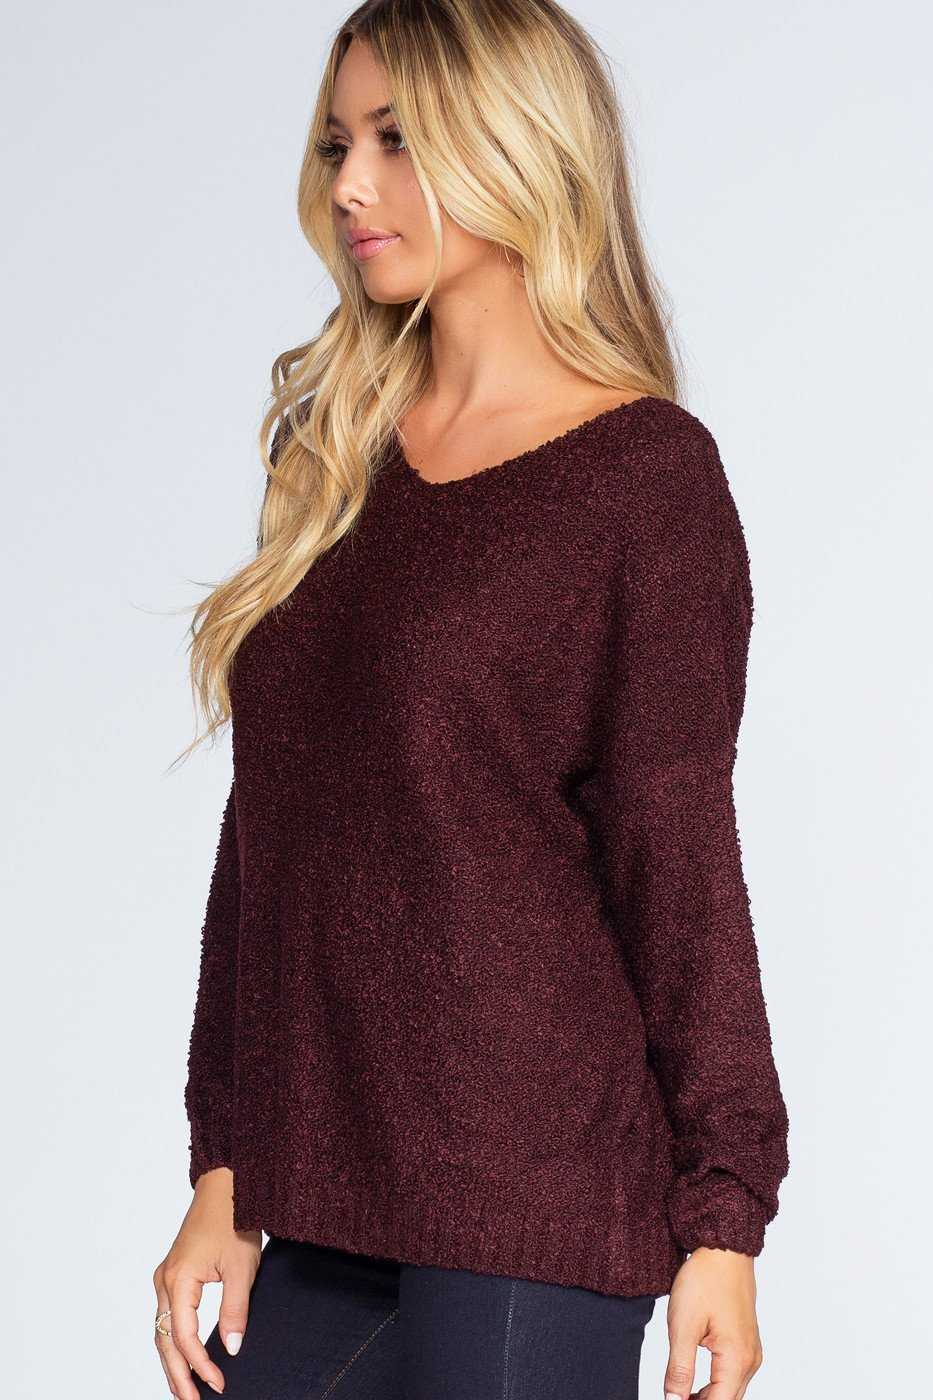 Tops - Wonder Girl Sweater - Burgundy